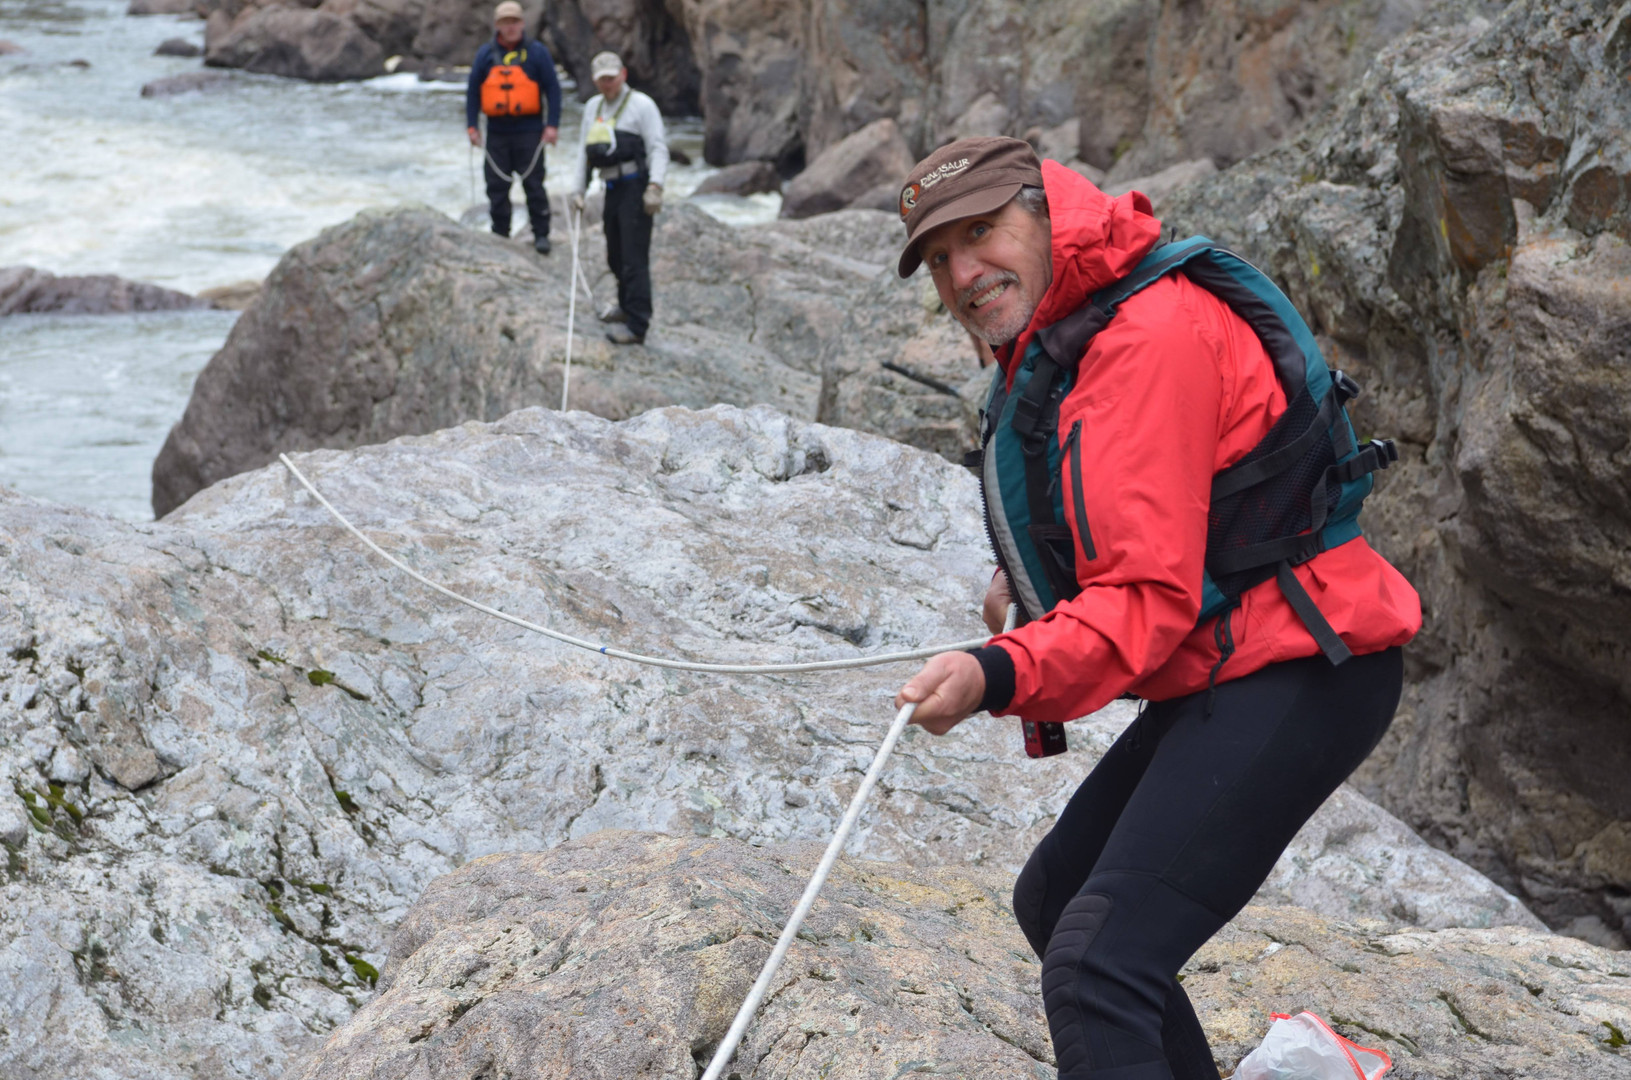 Owyhee Canyonlands Hiking and Canyoneering Wilderness